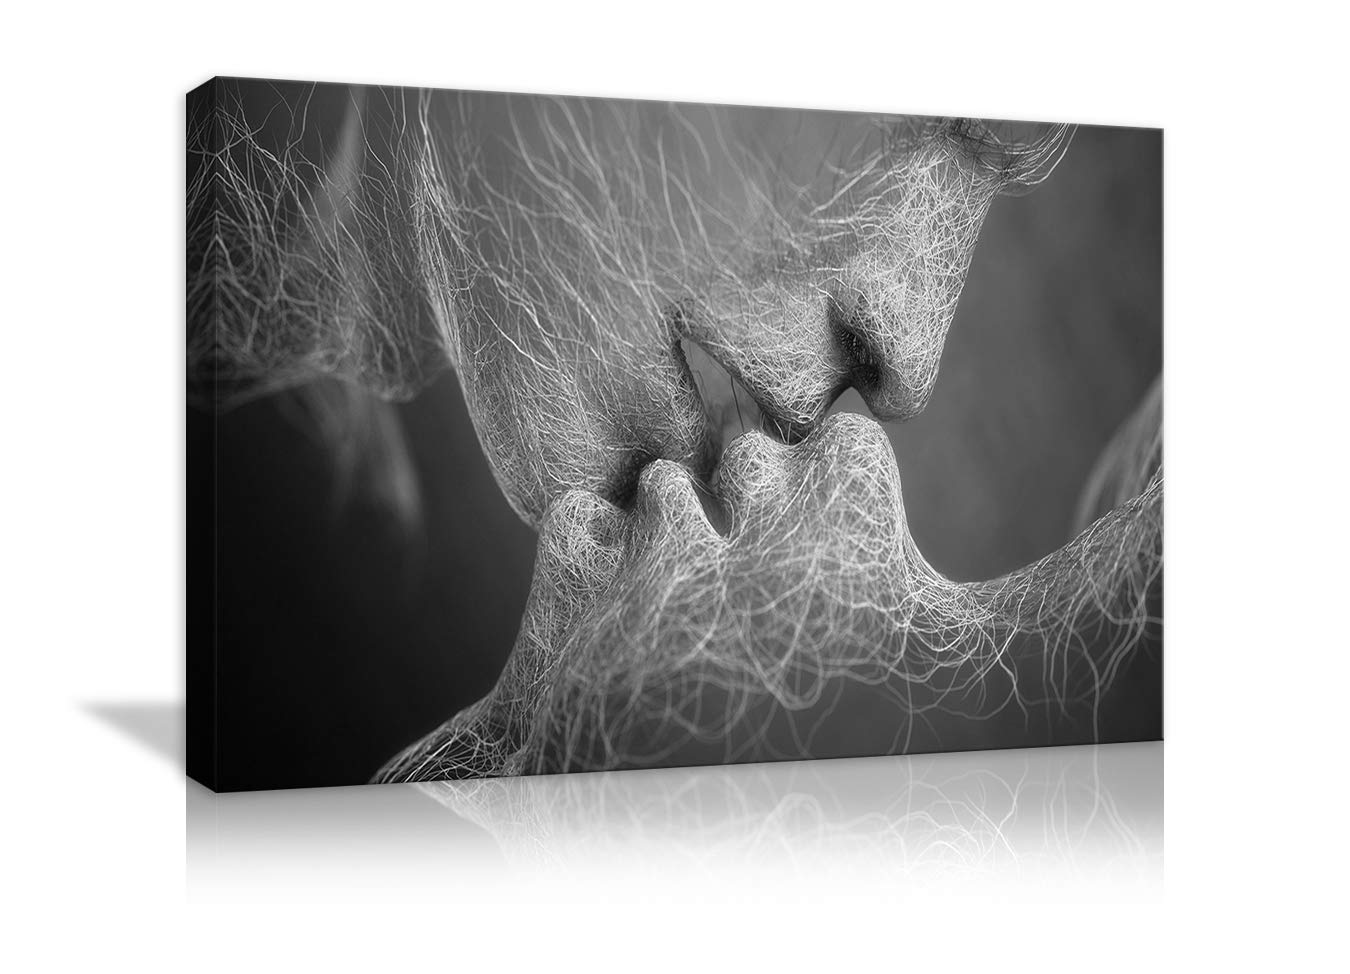 Amemny Wall Decor Black And White Love Kiss Abstract Art On Canvas Painting Wall Art Adam And Eve Picture Print Modern Home Decor Framed Ready To Hang